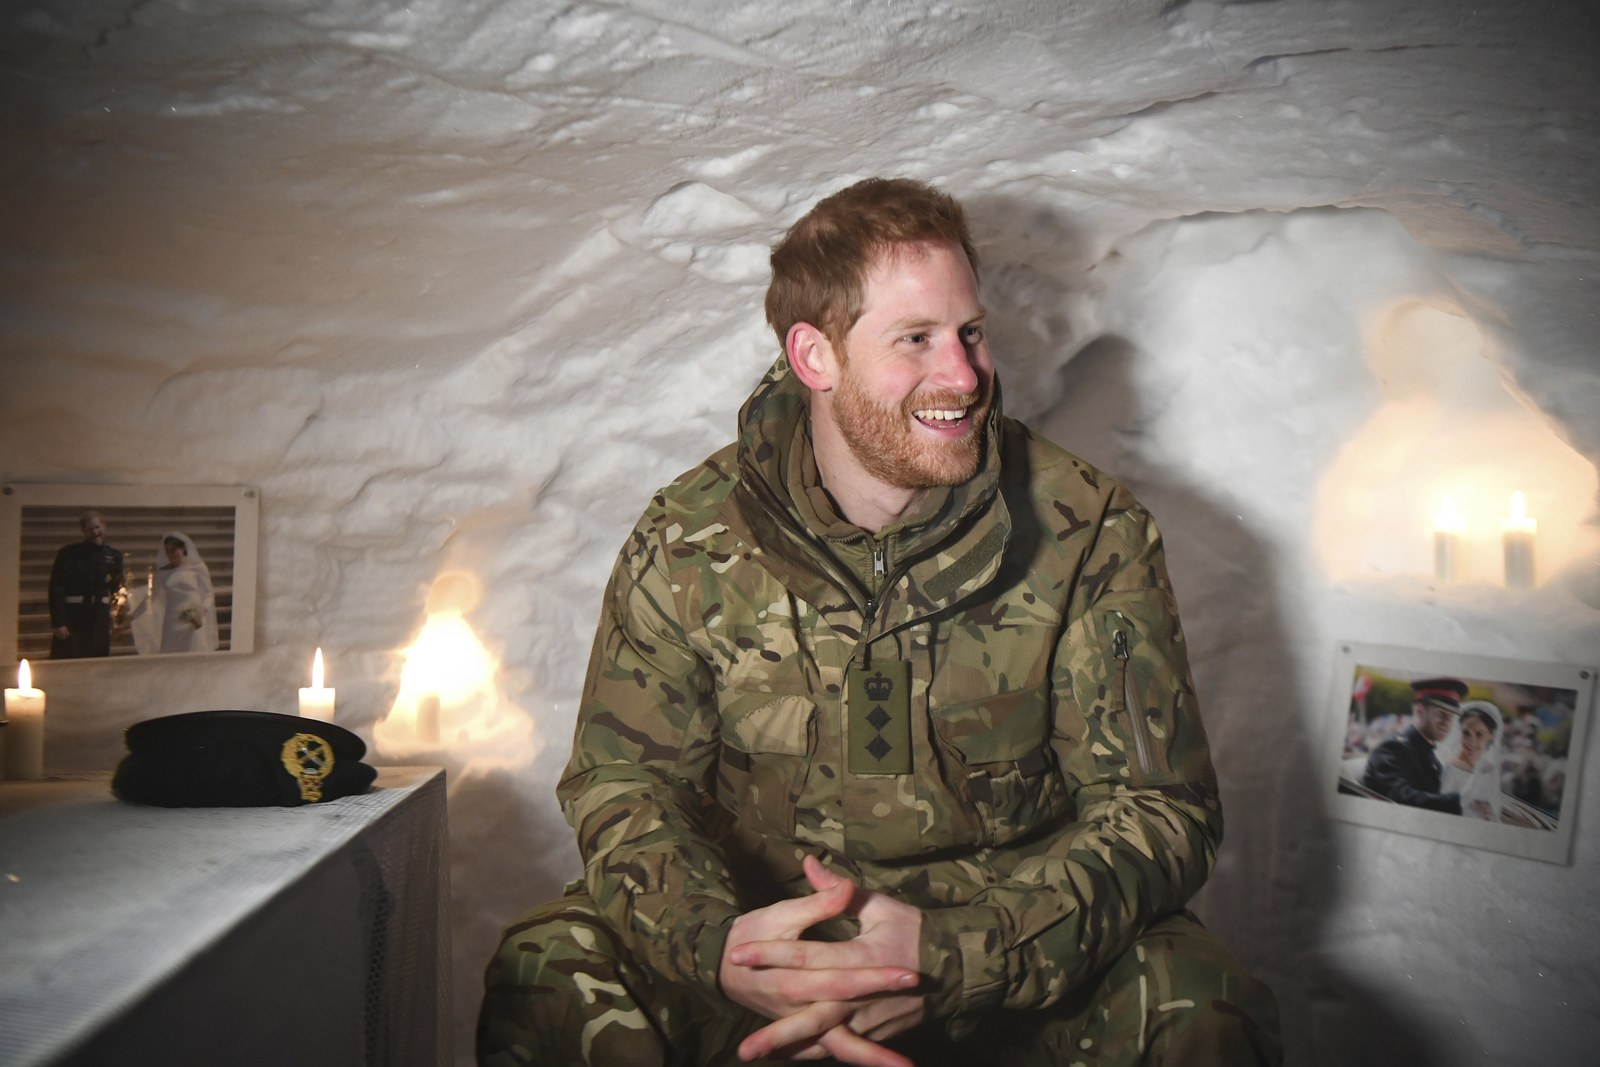 Prince Harry in a makeshift shelter built of snow covered in pics of Meghan Markle.